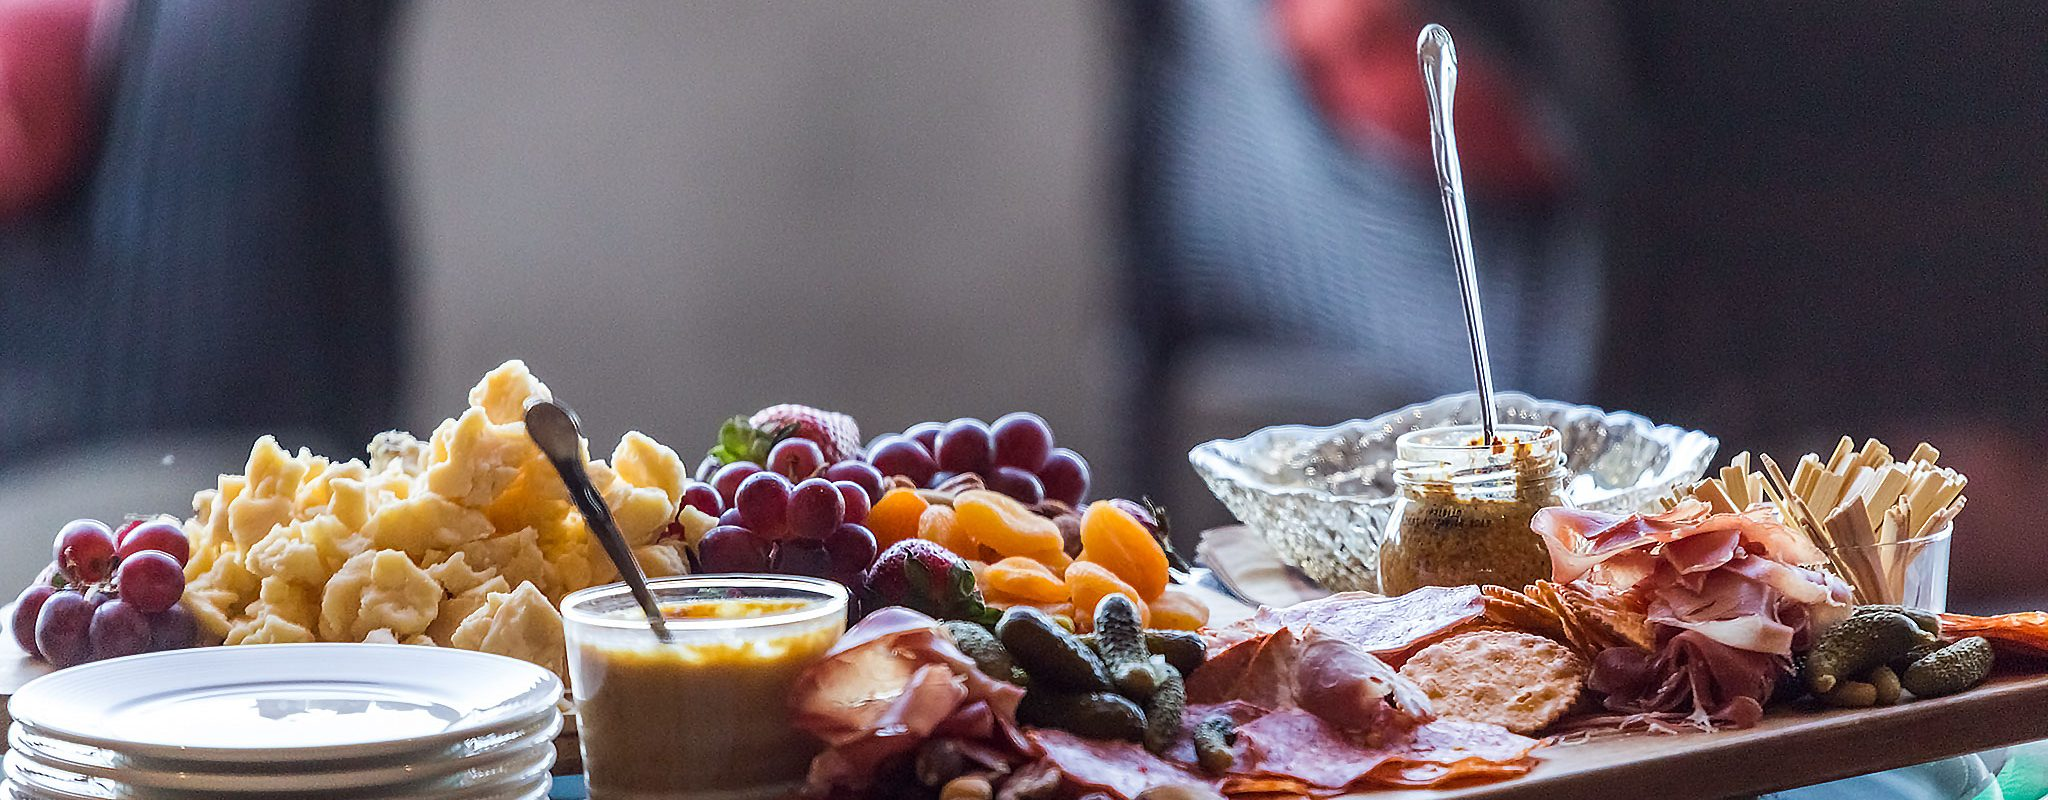 Charcuterie & Cheese plate for two at Columbia Point Hotel